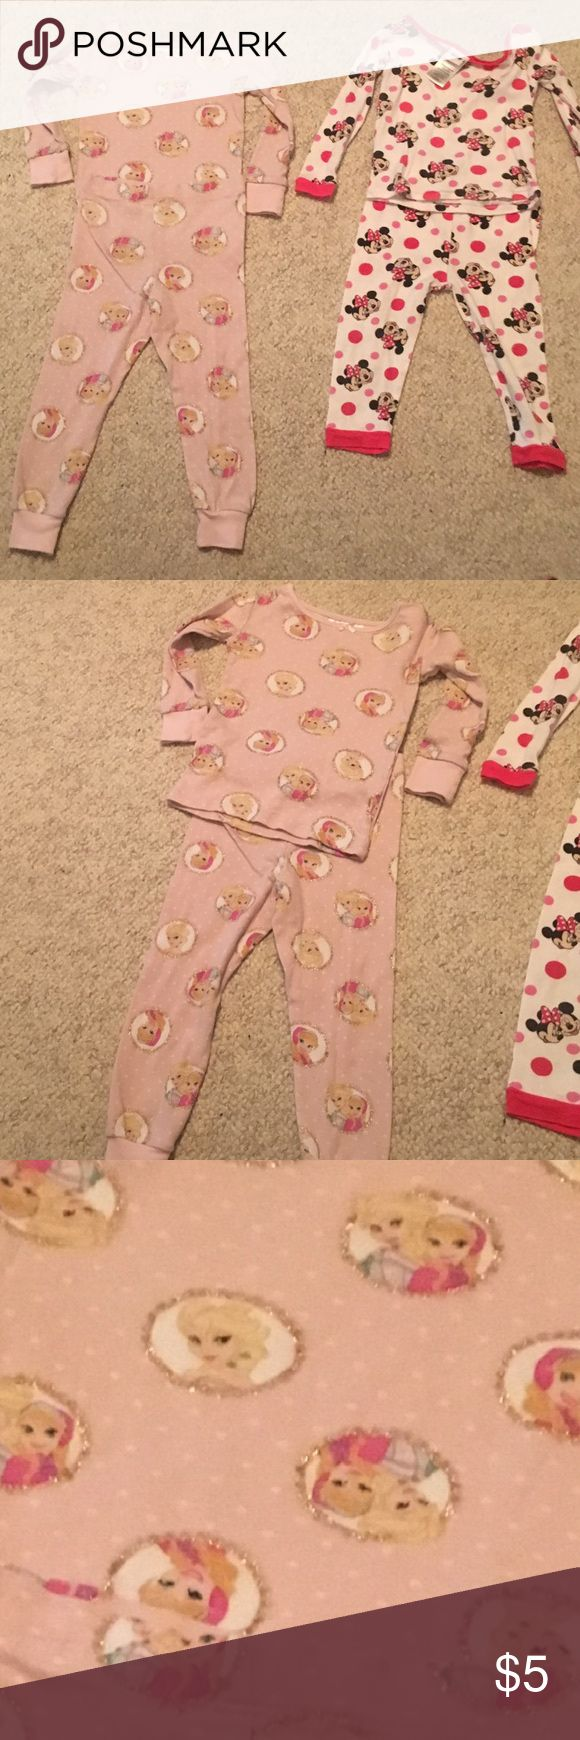 2 pairs of baby girl pajamas 24months &36 months 2 pairs of baby girl pajamas sets 24months &36 months One by H&M and the other by Disney in good condition #326 Pajamas Pajama Sets